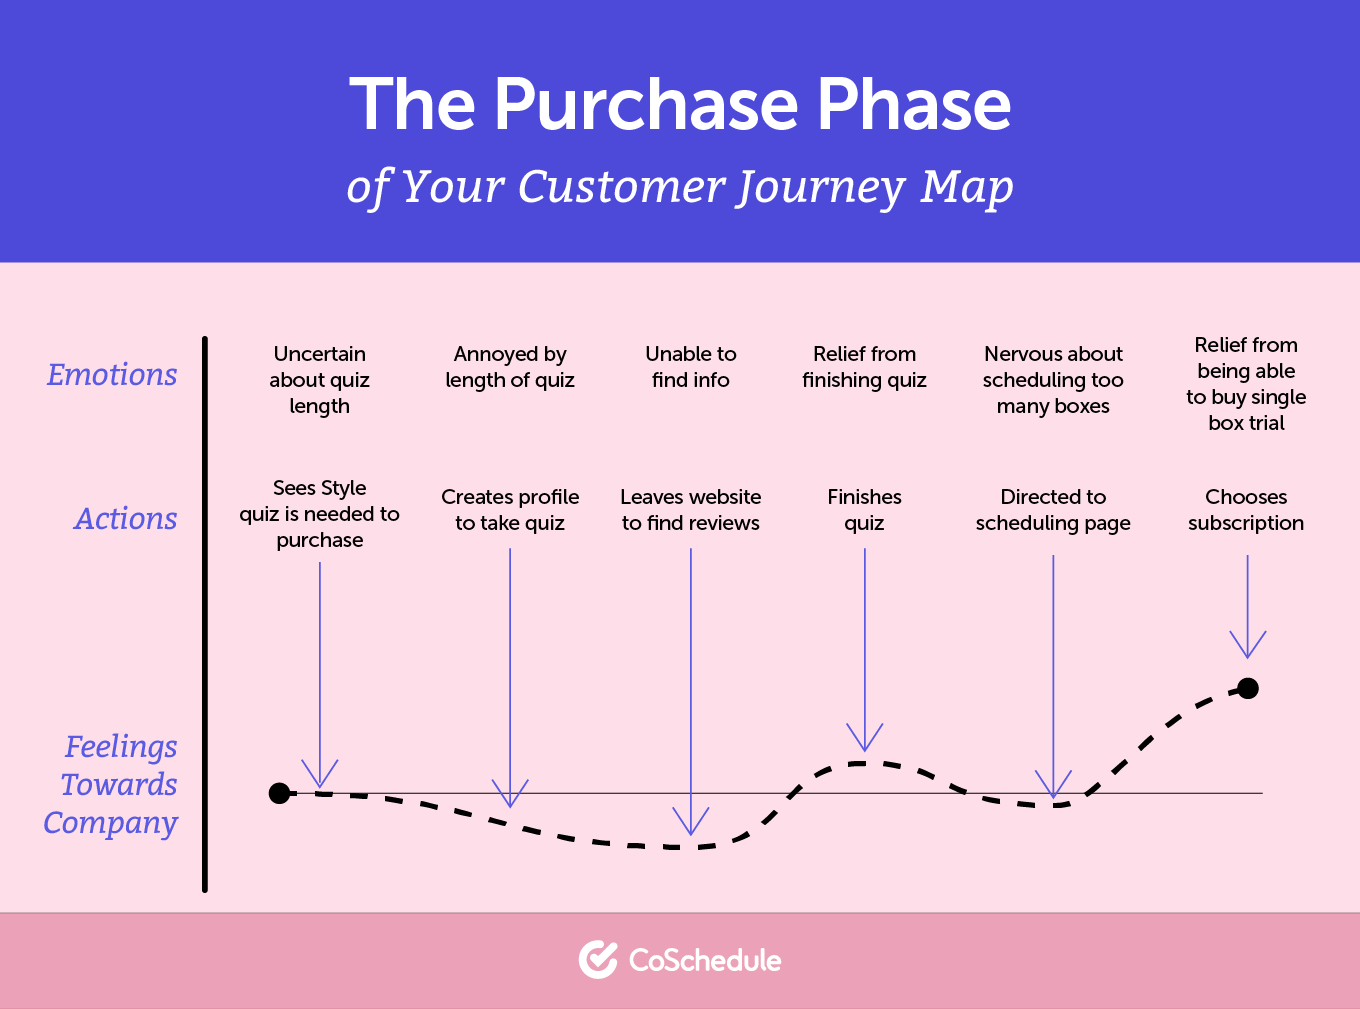 The purchase phase in a buyer's journey